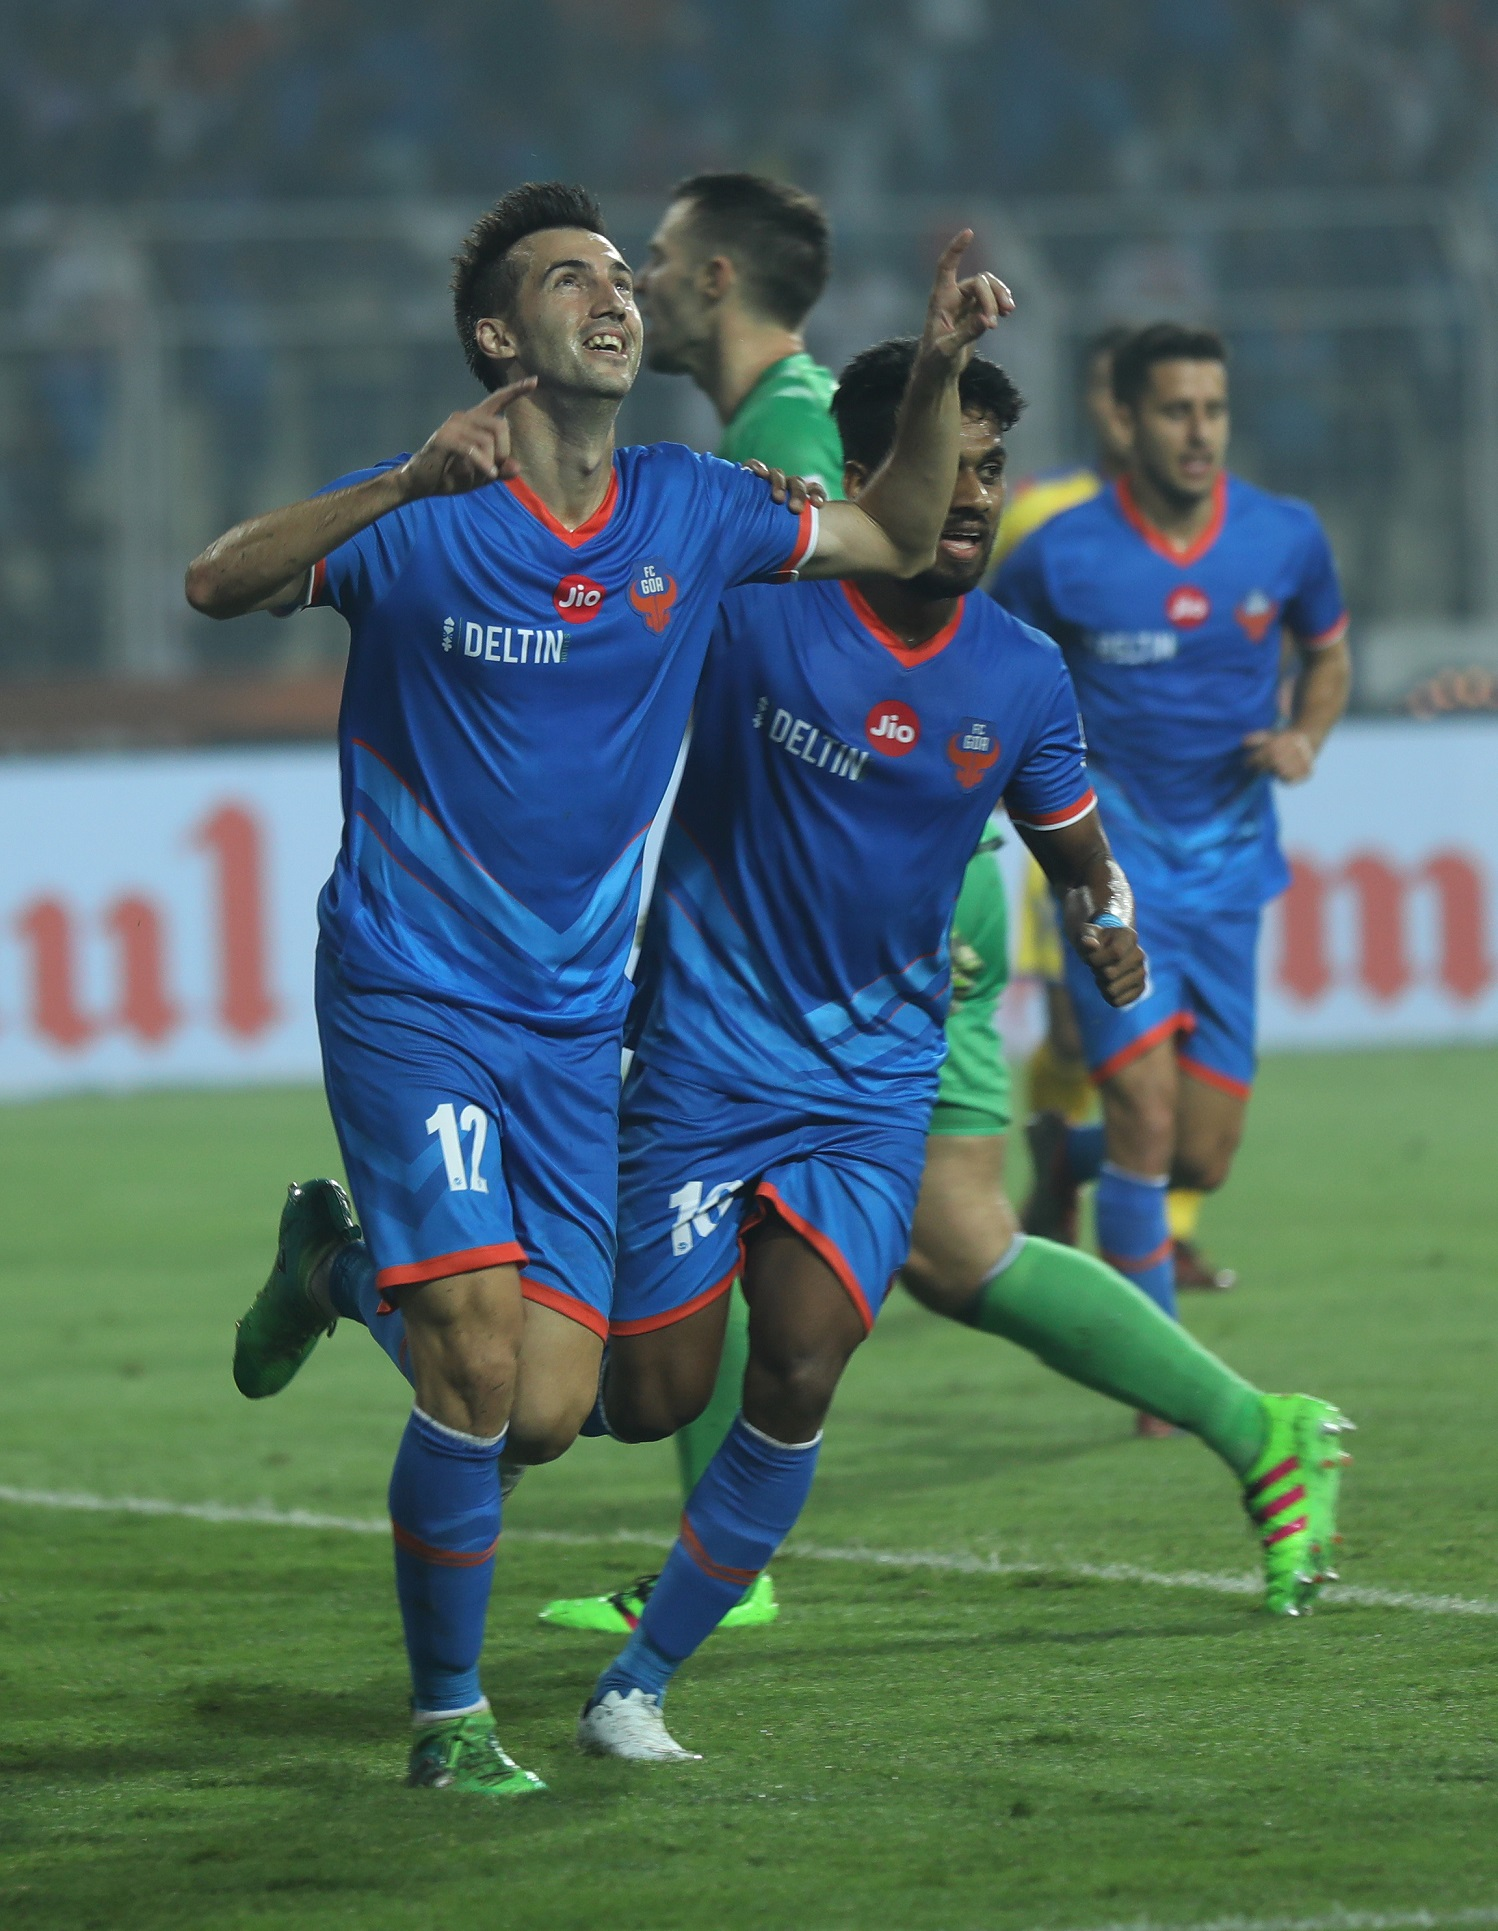 Coro creates history in ISL, scores 2nd hat-trick as FCGOA humbles blaster 5-2